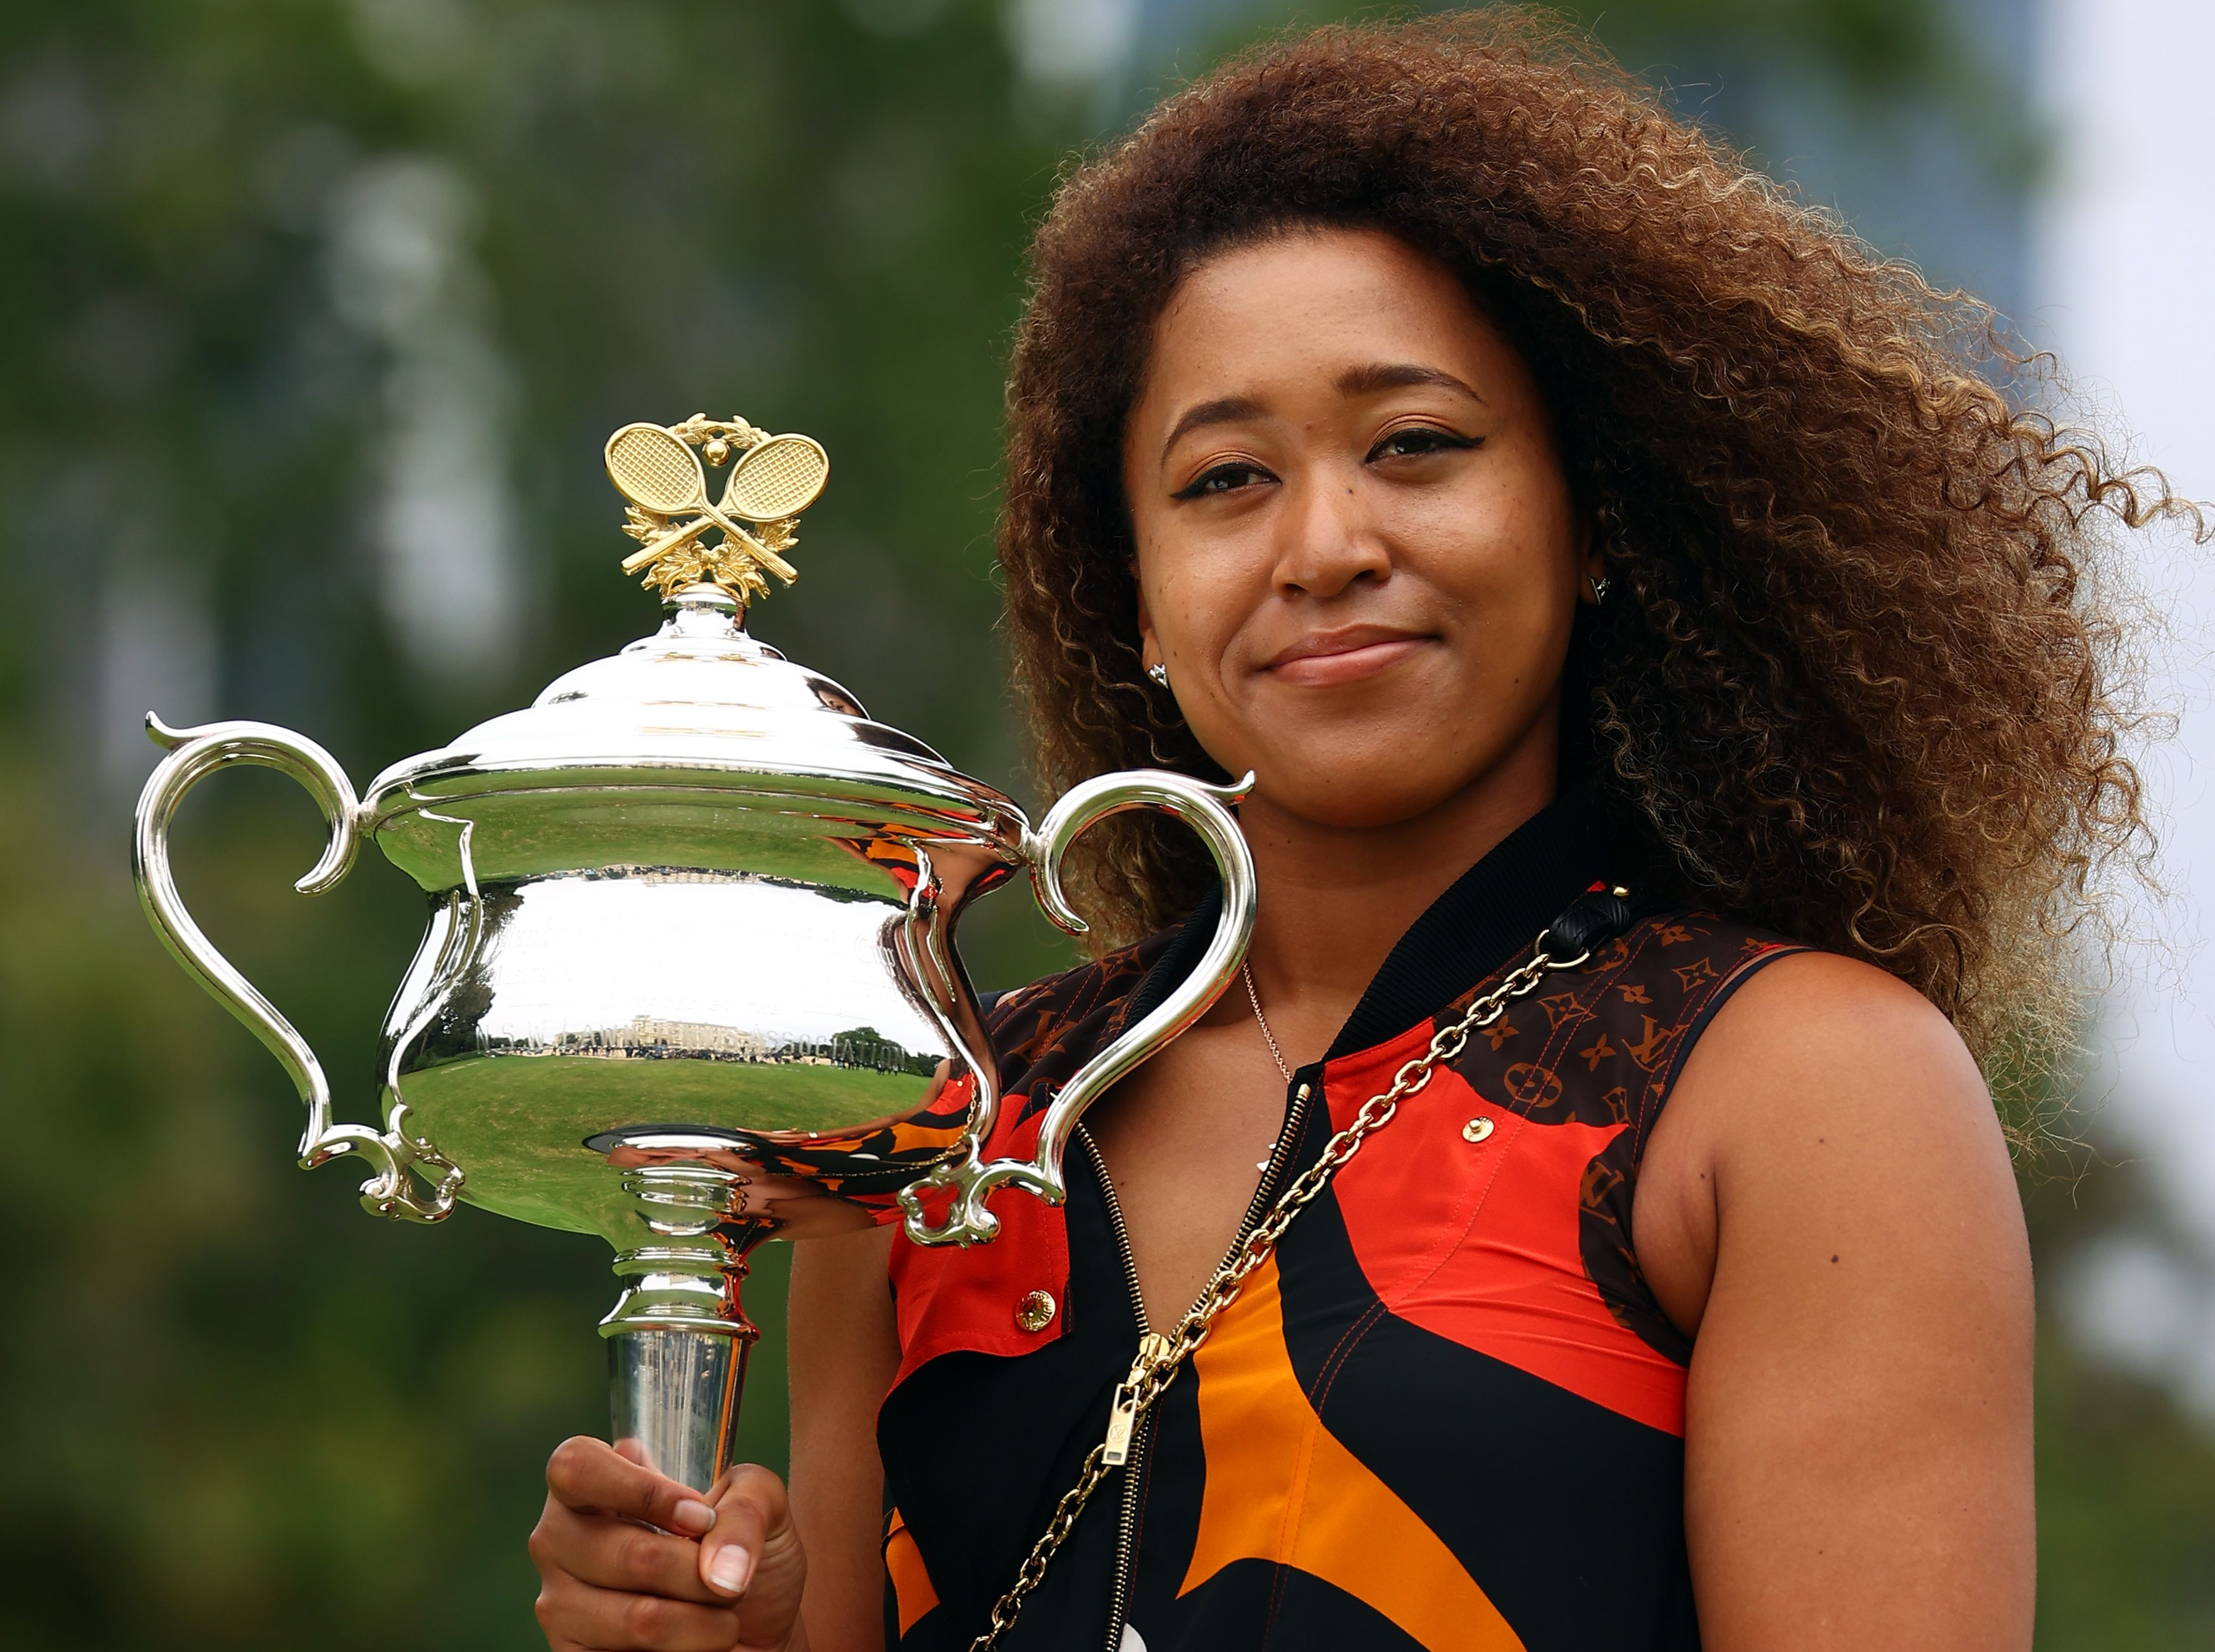 Tennis Star Naomi Osaka Shares Her Simple Hopes for Life After Tennis